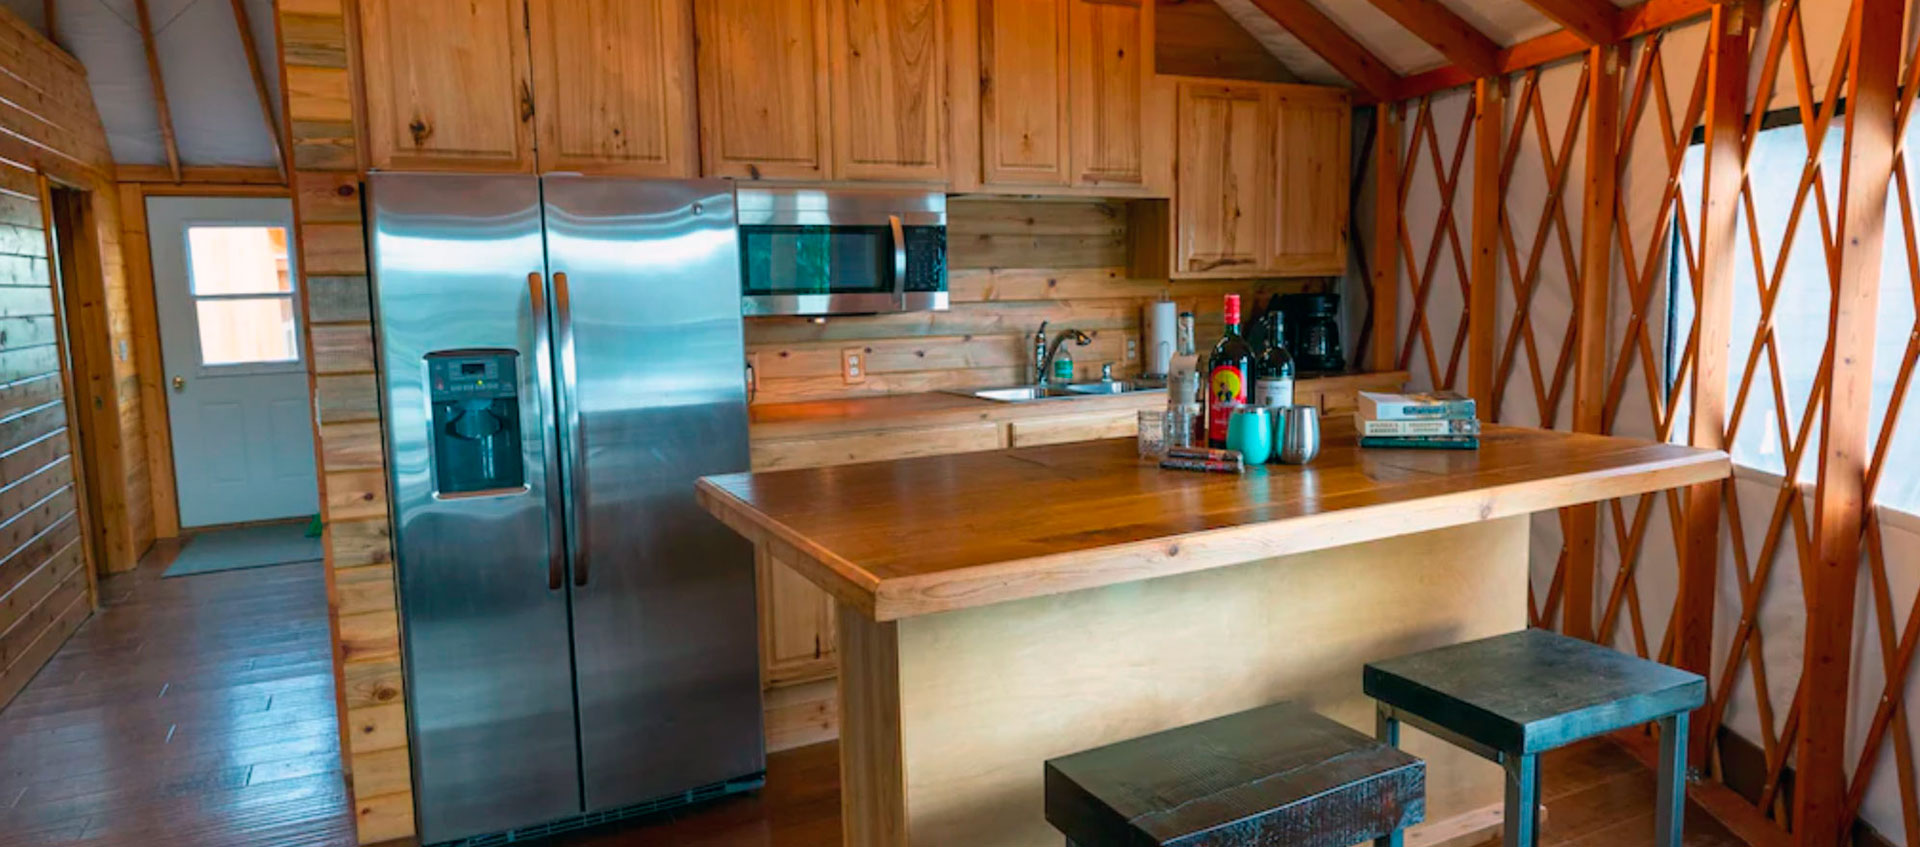 The Kitchen in The Yurt at Craig | Fly Fishing Vacation Rental in Craig, MT